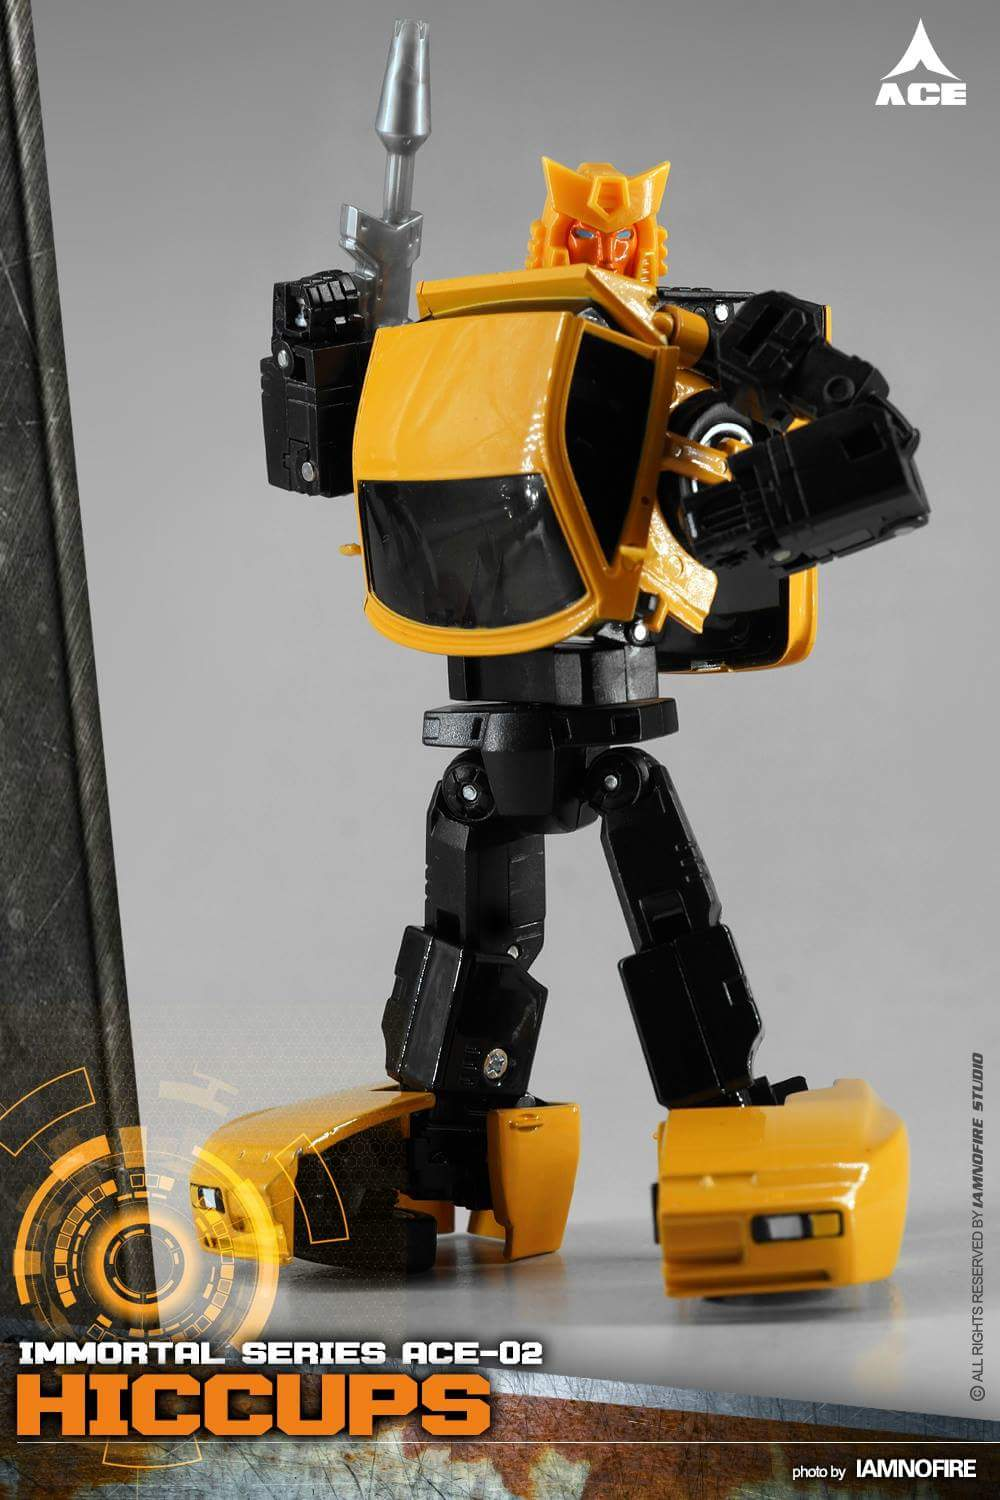 [ACE Collectables] Produit Tiers - Minibots MP - ACE-01 Tumbler (aka Cliffjumper/Matamore), ACE-02 Hiccups (aka Hubcap/Virevolto), ACE-03 Trident (aka Seaspray/Embruns) 9r1f7rX7